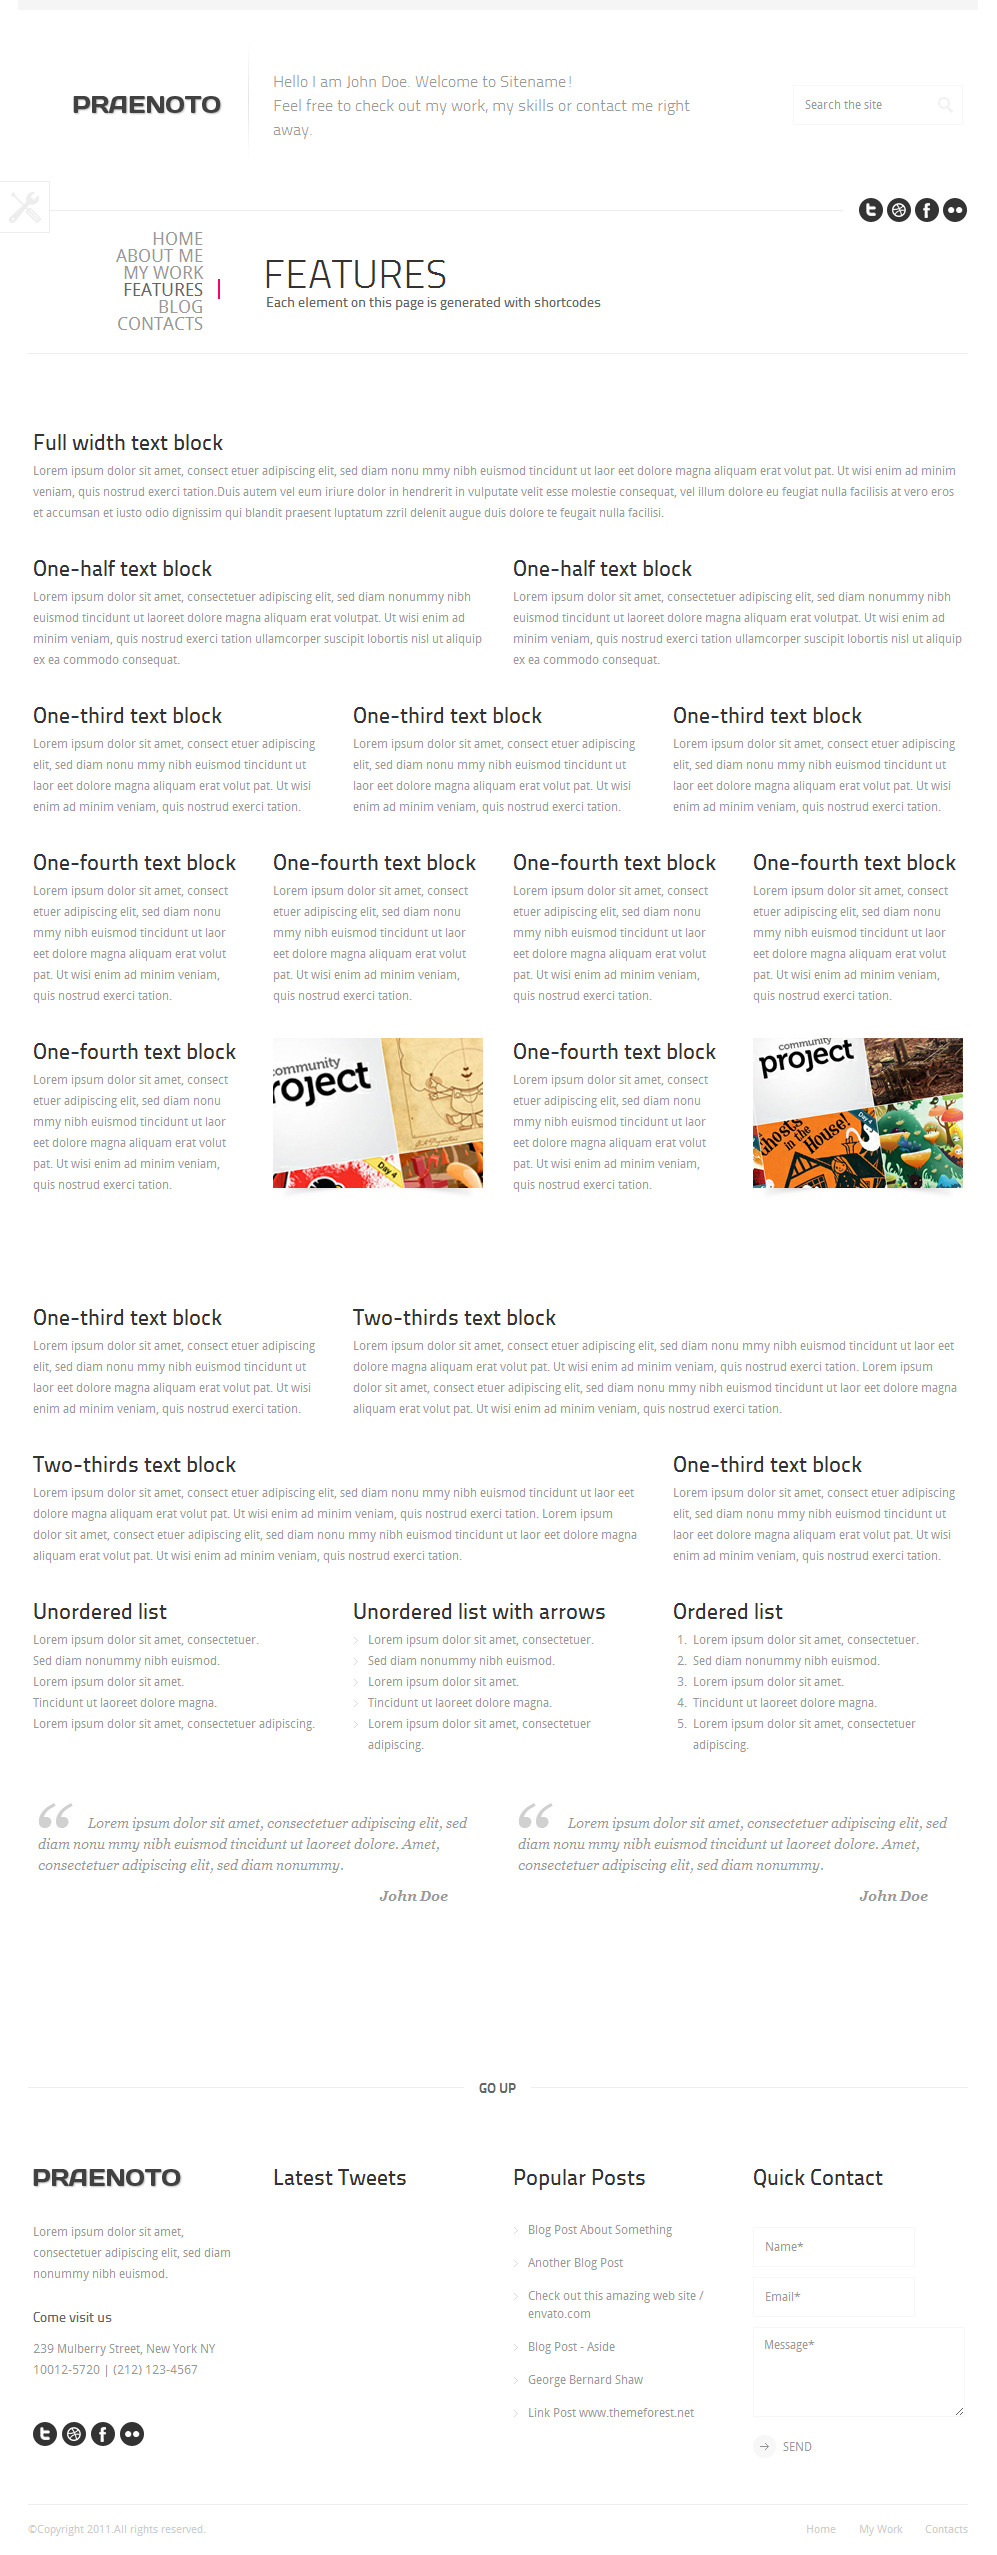 Praenoto - Clean & Minimalist WordPress Theme - Screenshot 13. Layout blocks page.